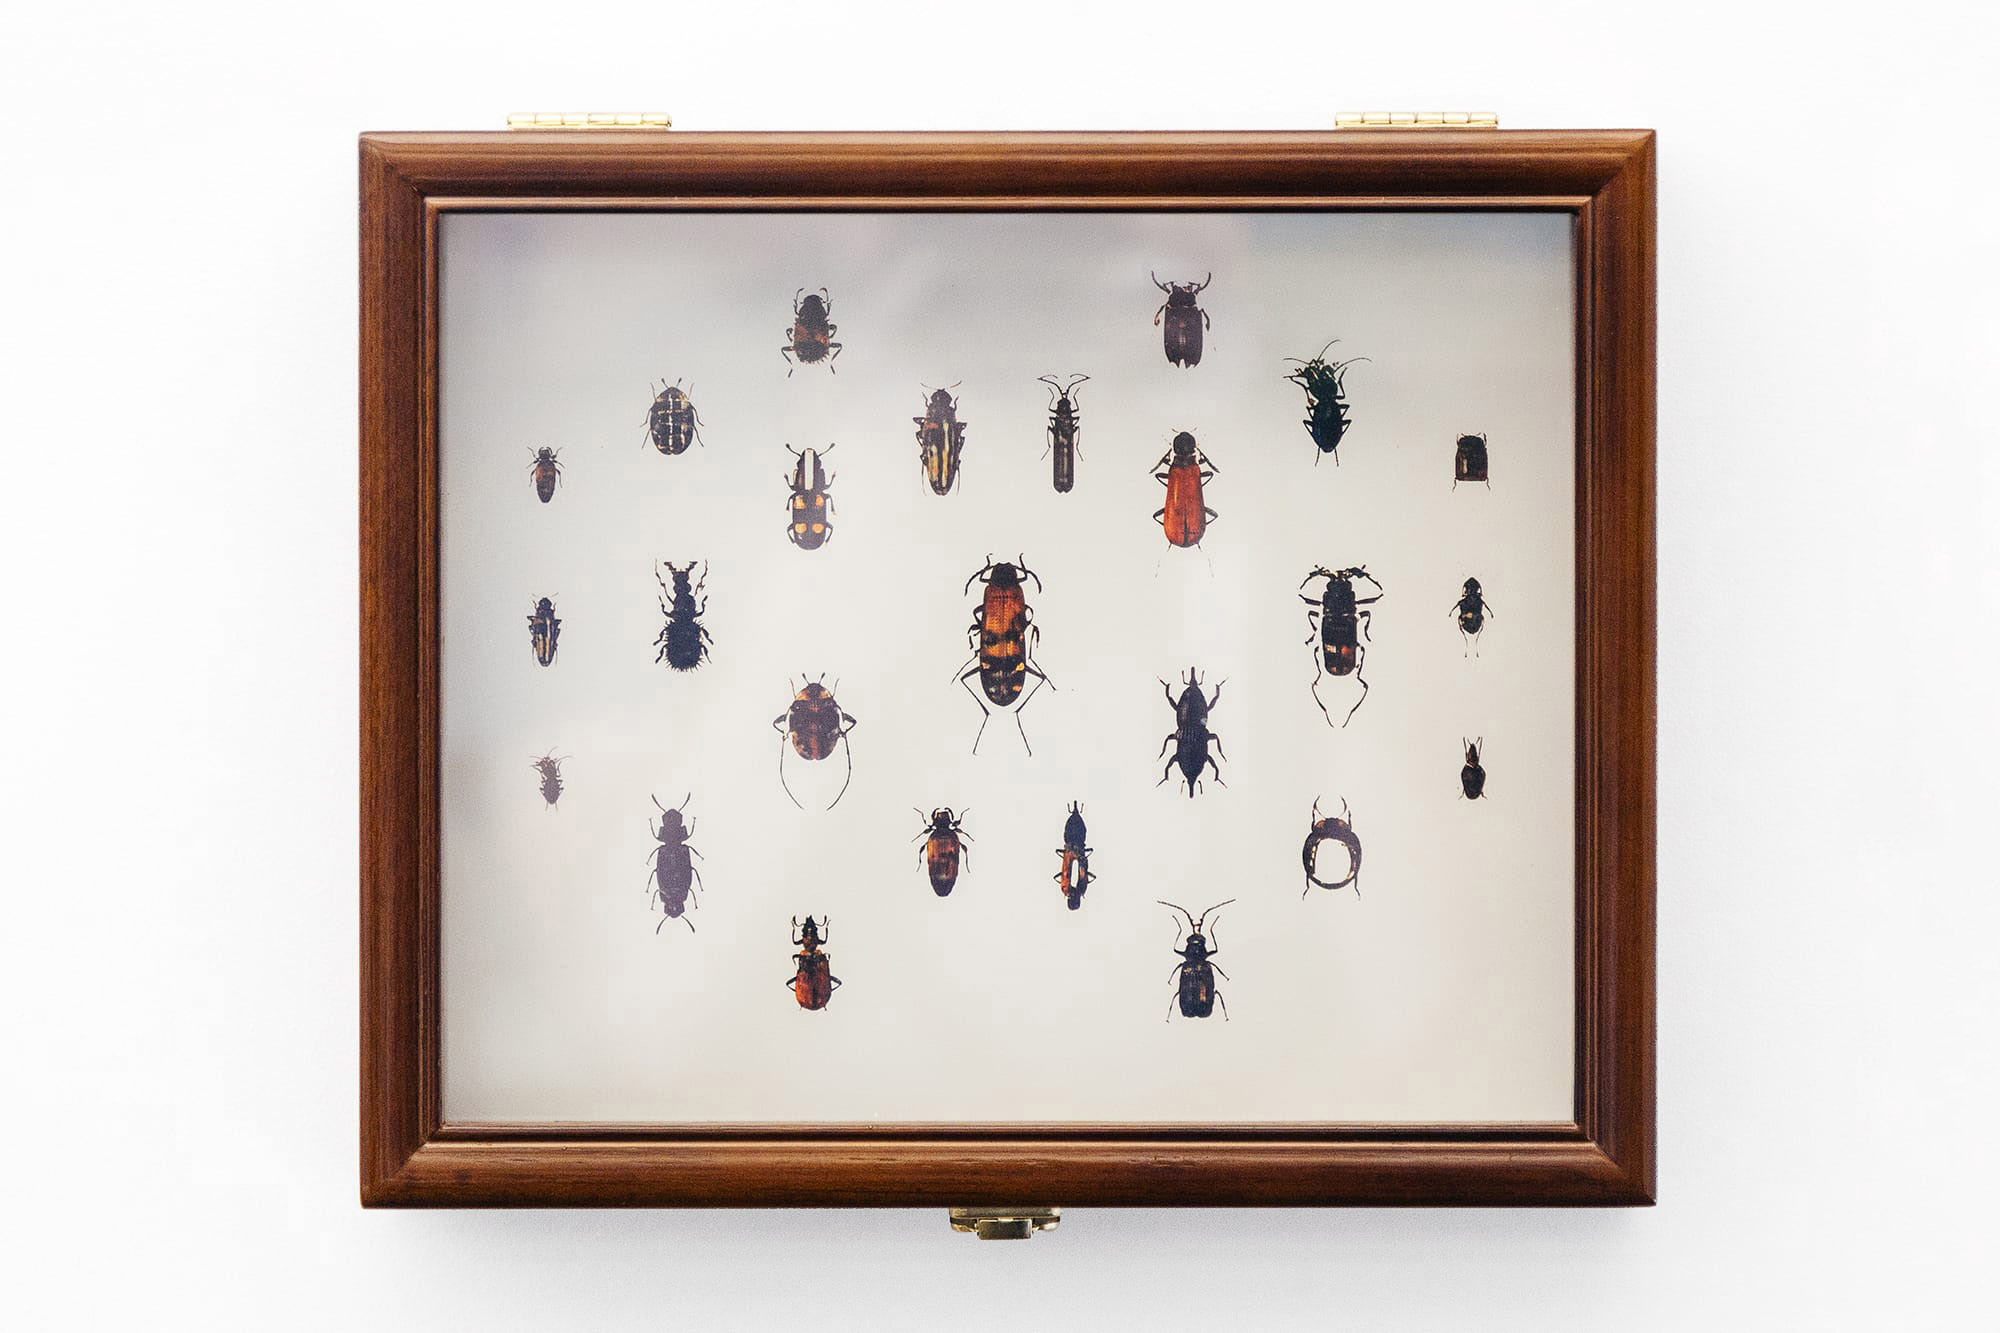 a display box with a print of beetles, generated by an artificial intelligence (machine learning) algorith,